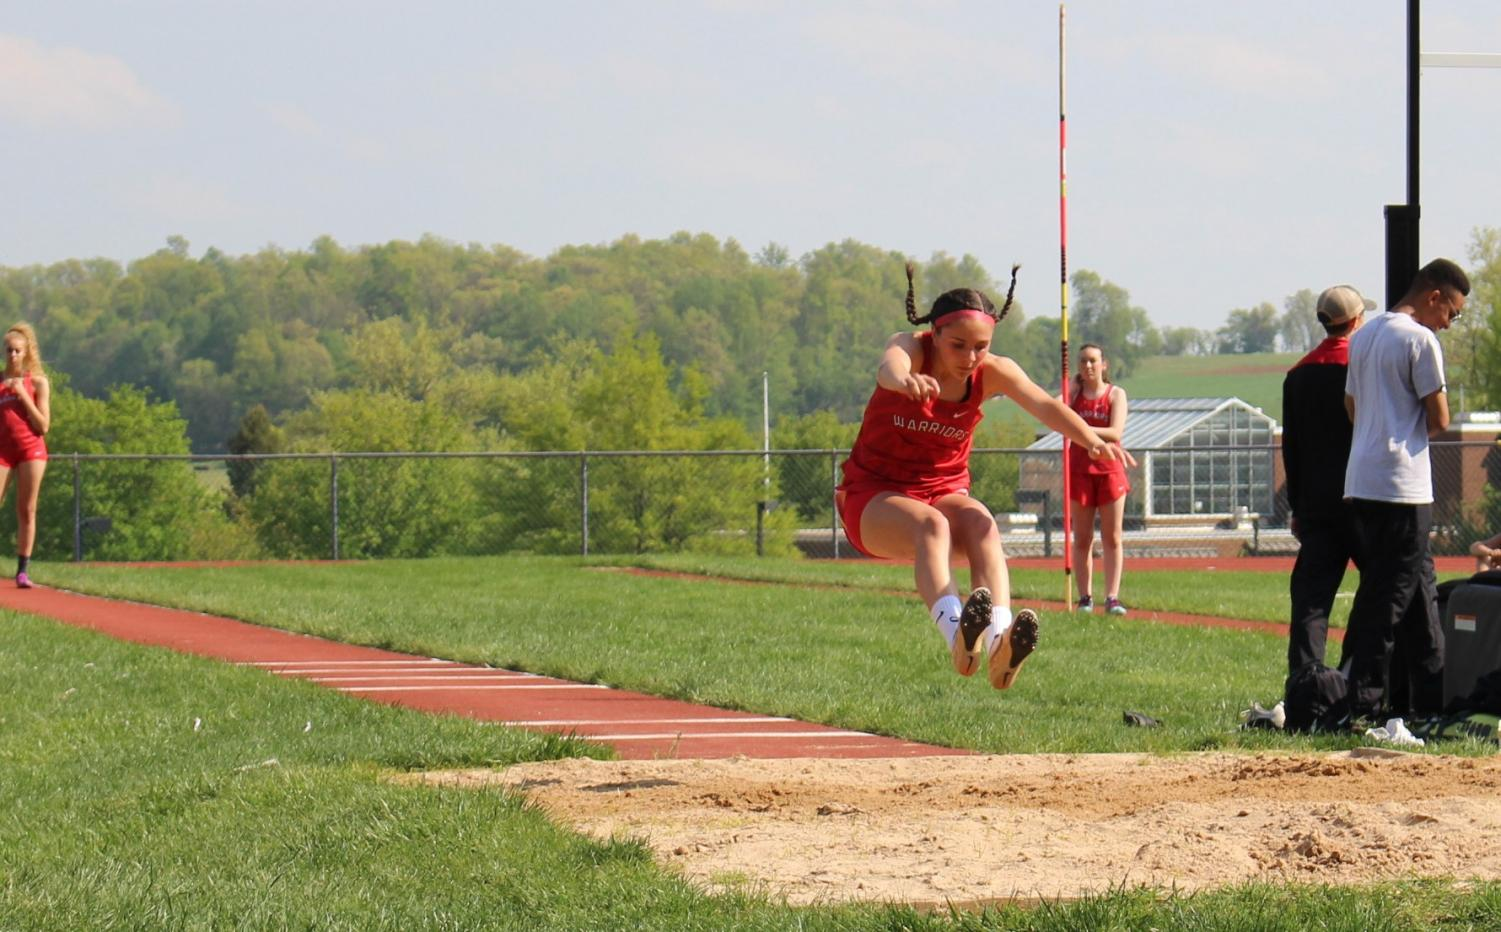 Freshman+Shelby+Derkosh+competes+in+the+long+jump.+Derkosh+took+first+place+in+the+long+jump%2C+triple+jump+and+400m+race+in+the+Kennard-Dale+meet.